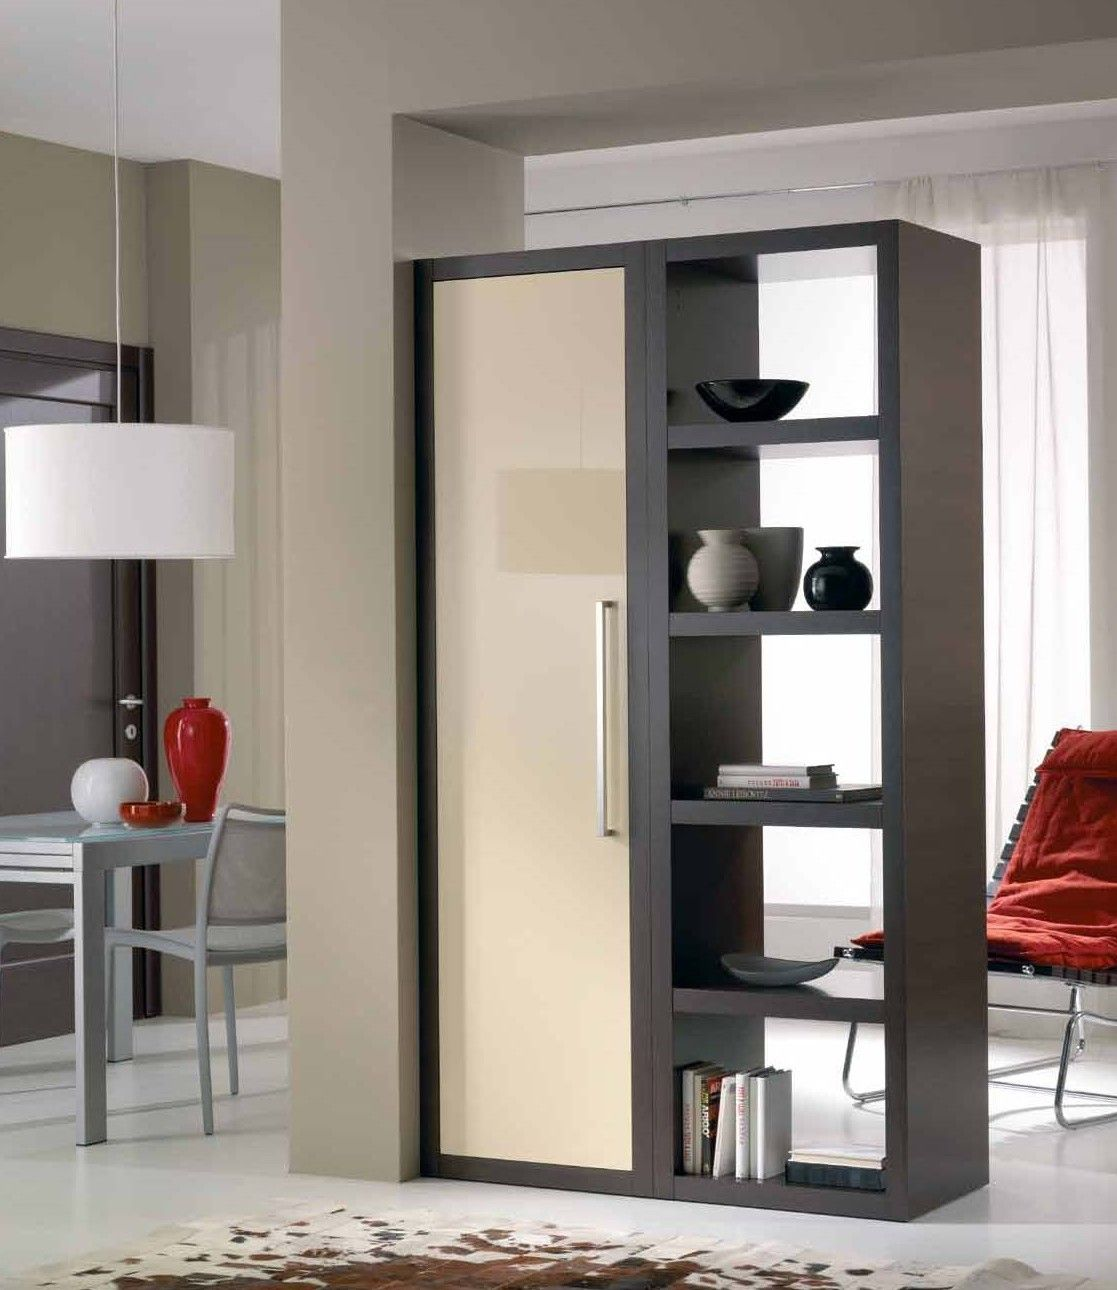 Configure Your Small Space Using Room Divider Ikea Fresh Room Amazing Living Room Divider Design 2018